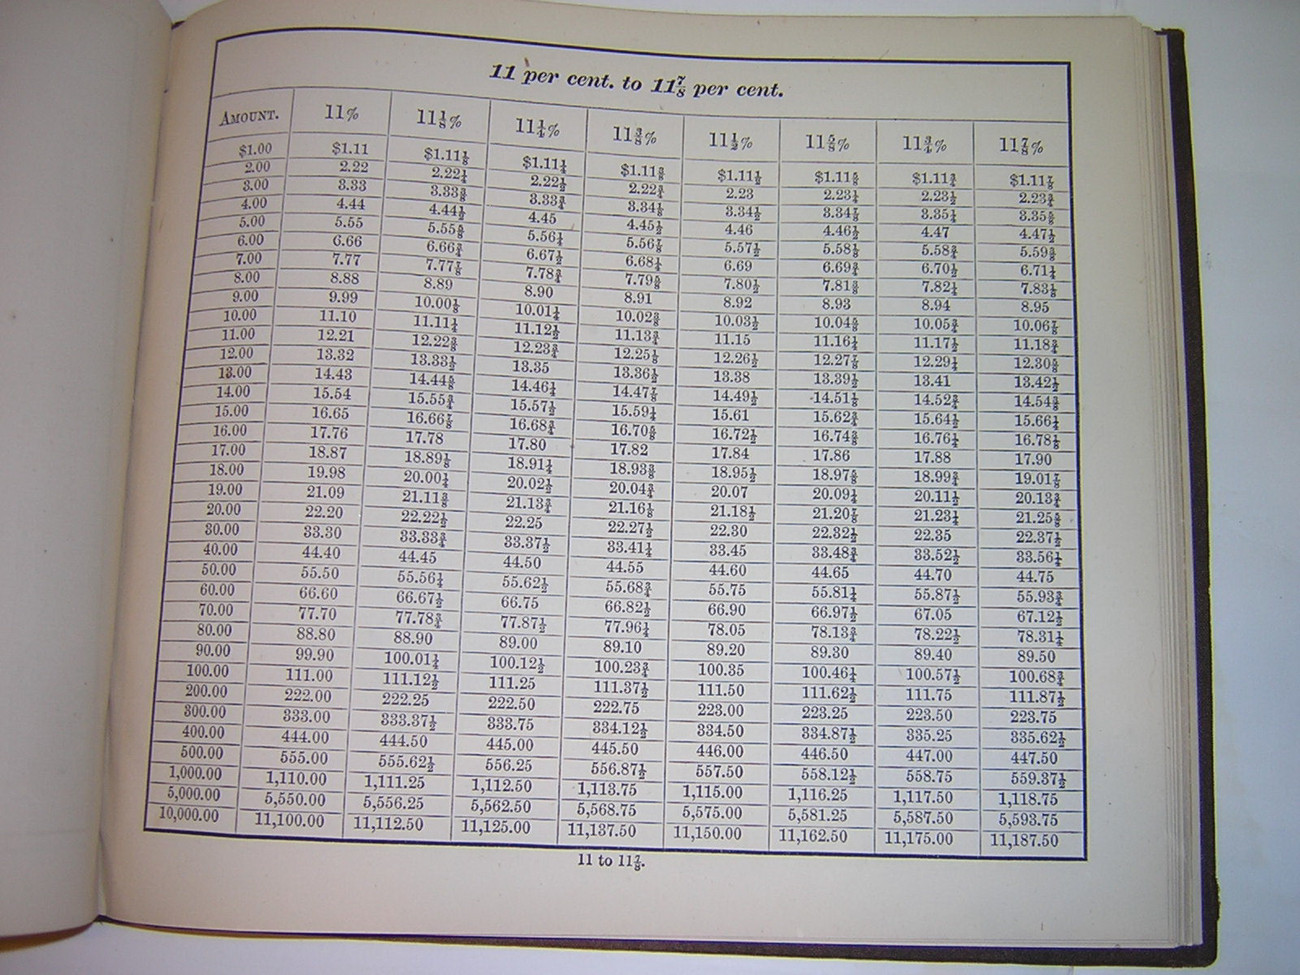 1871 Towers Premium Tables For Buying and Selling Gold, Bonds and Stocks